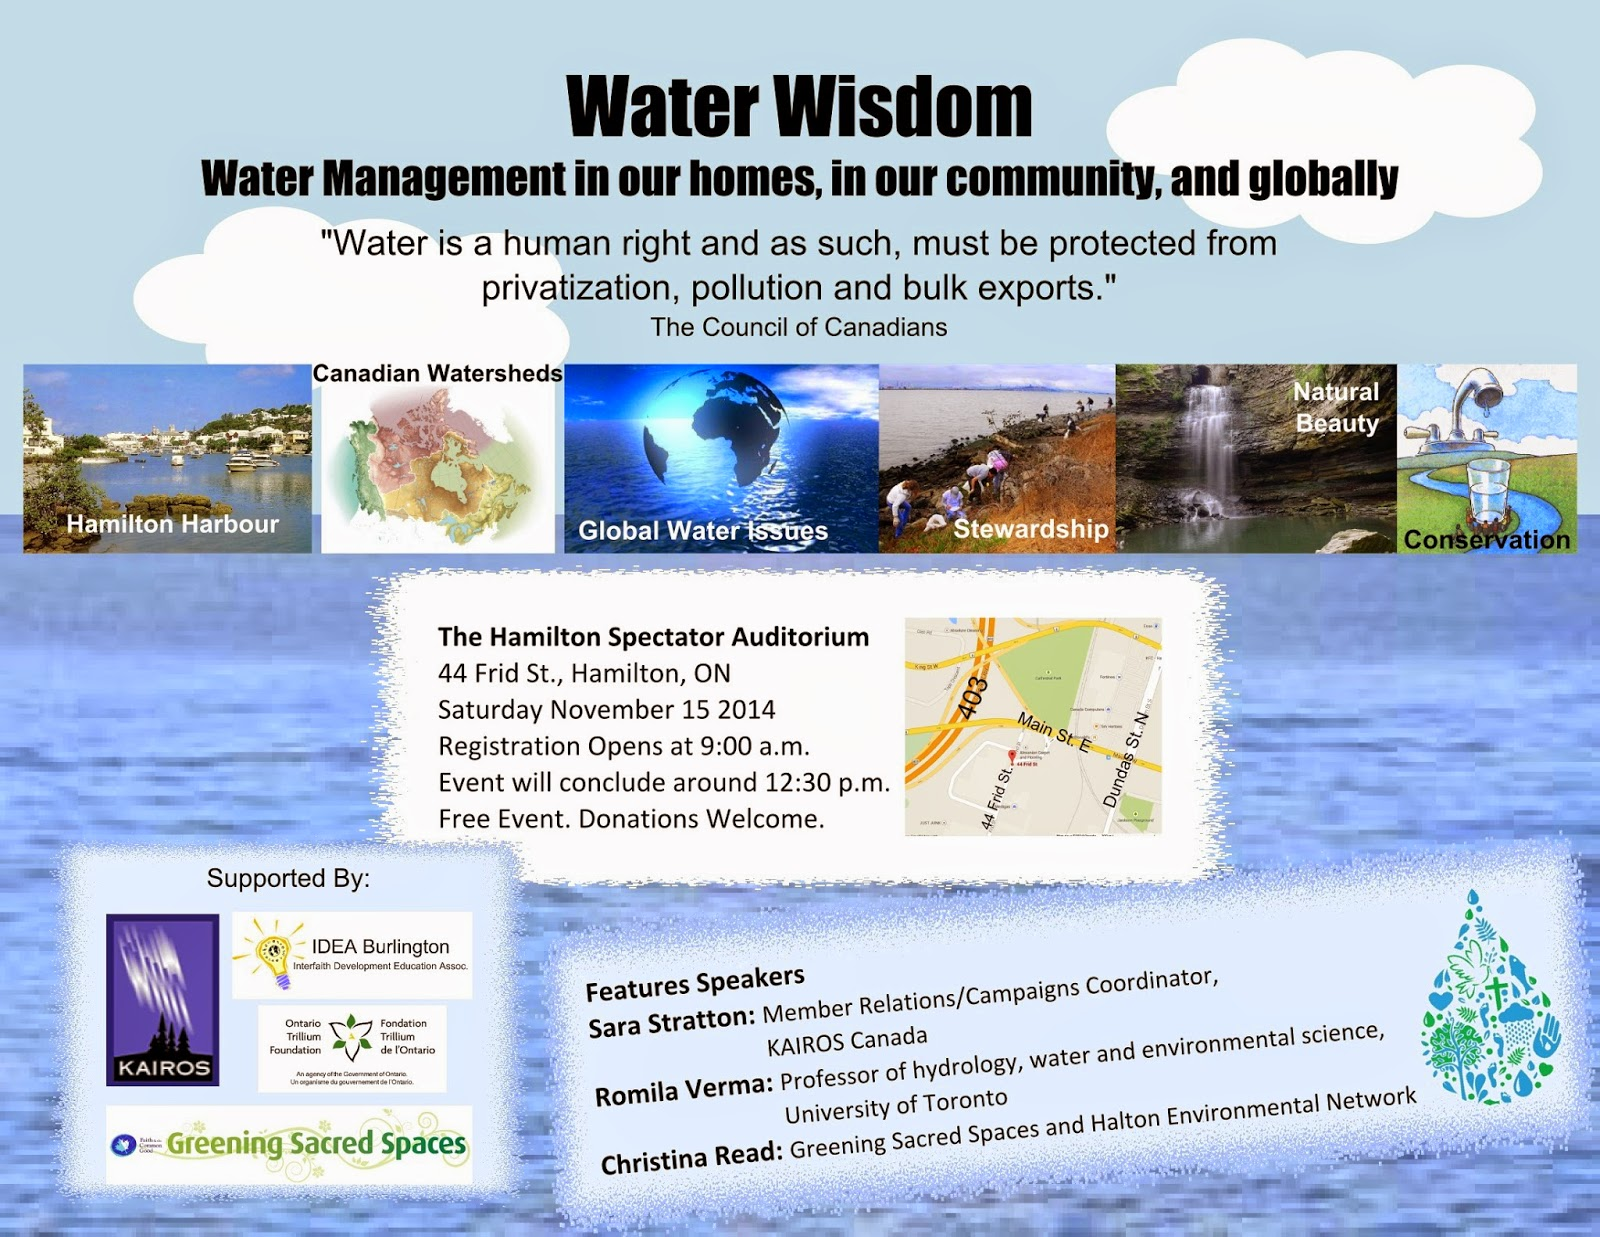 Water Wisdom event poster